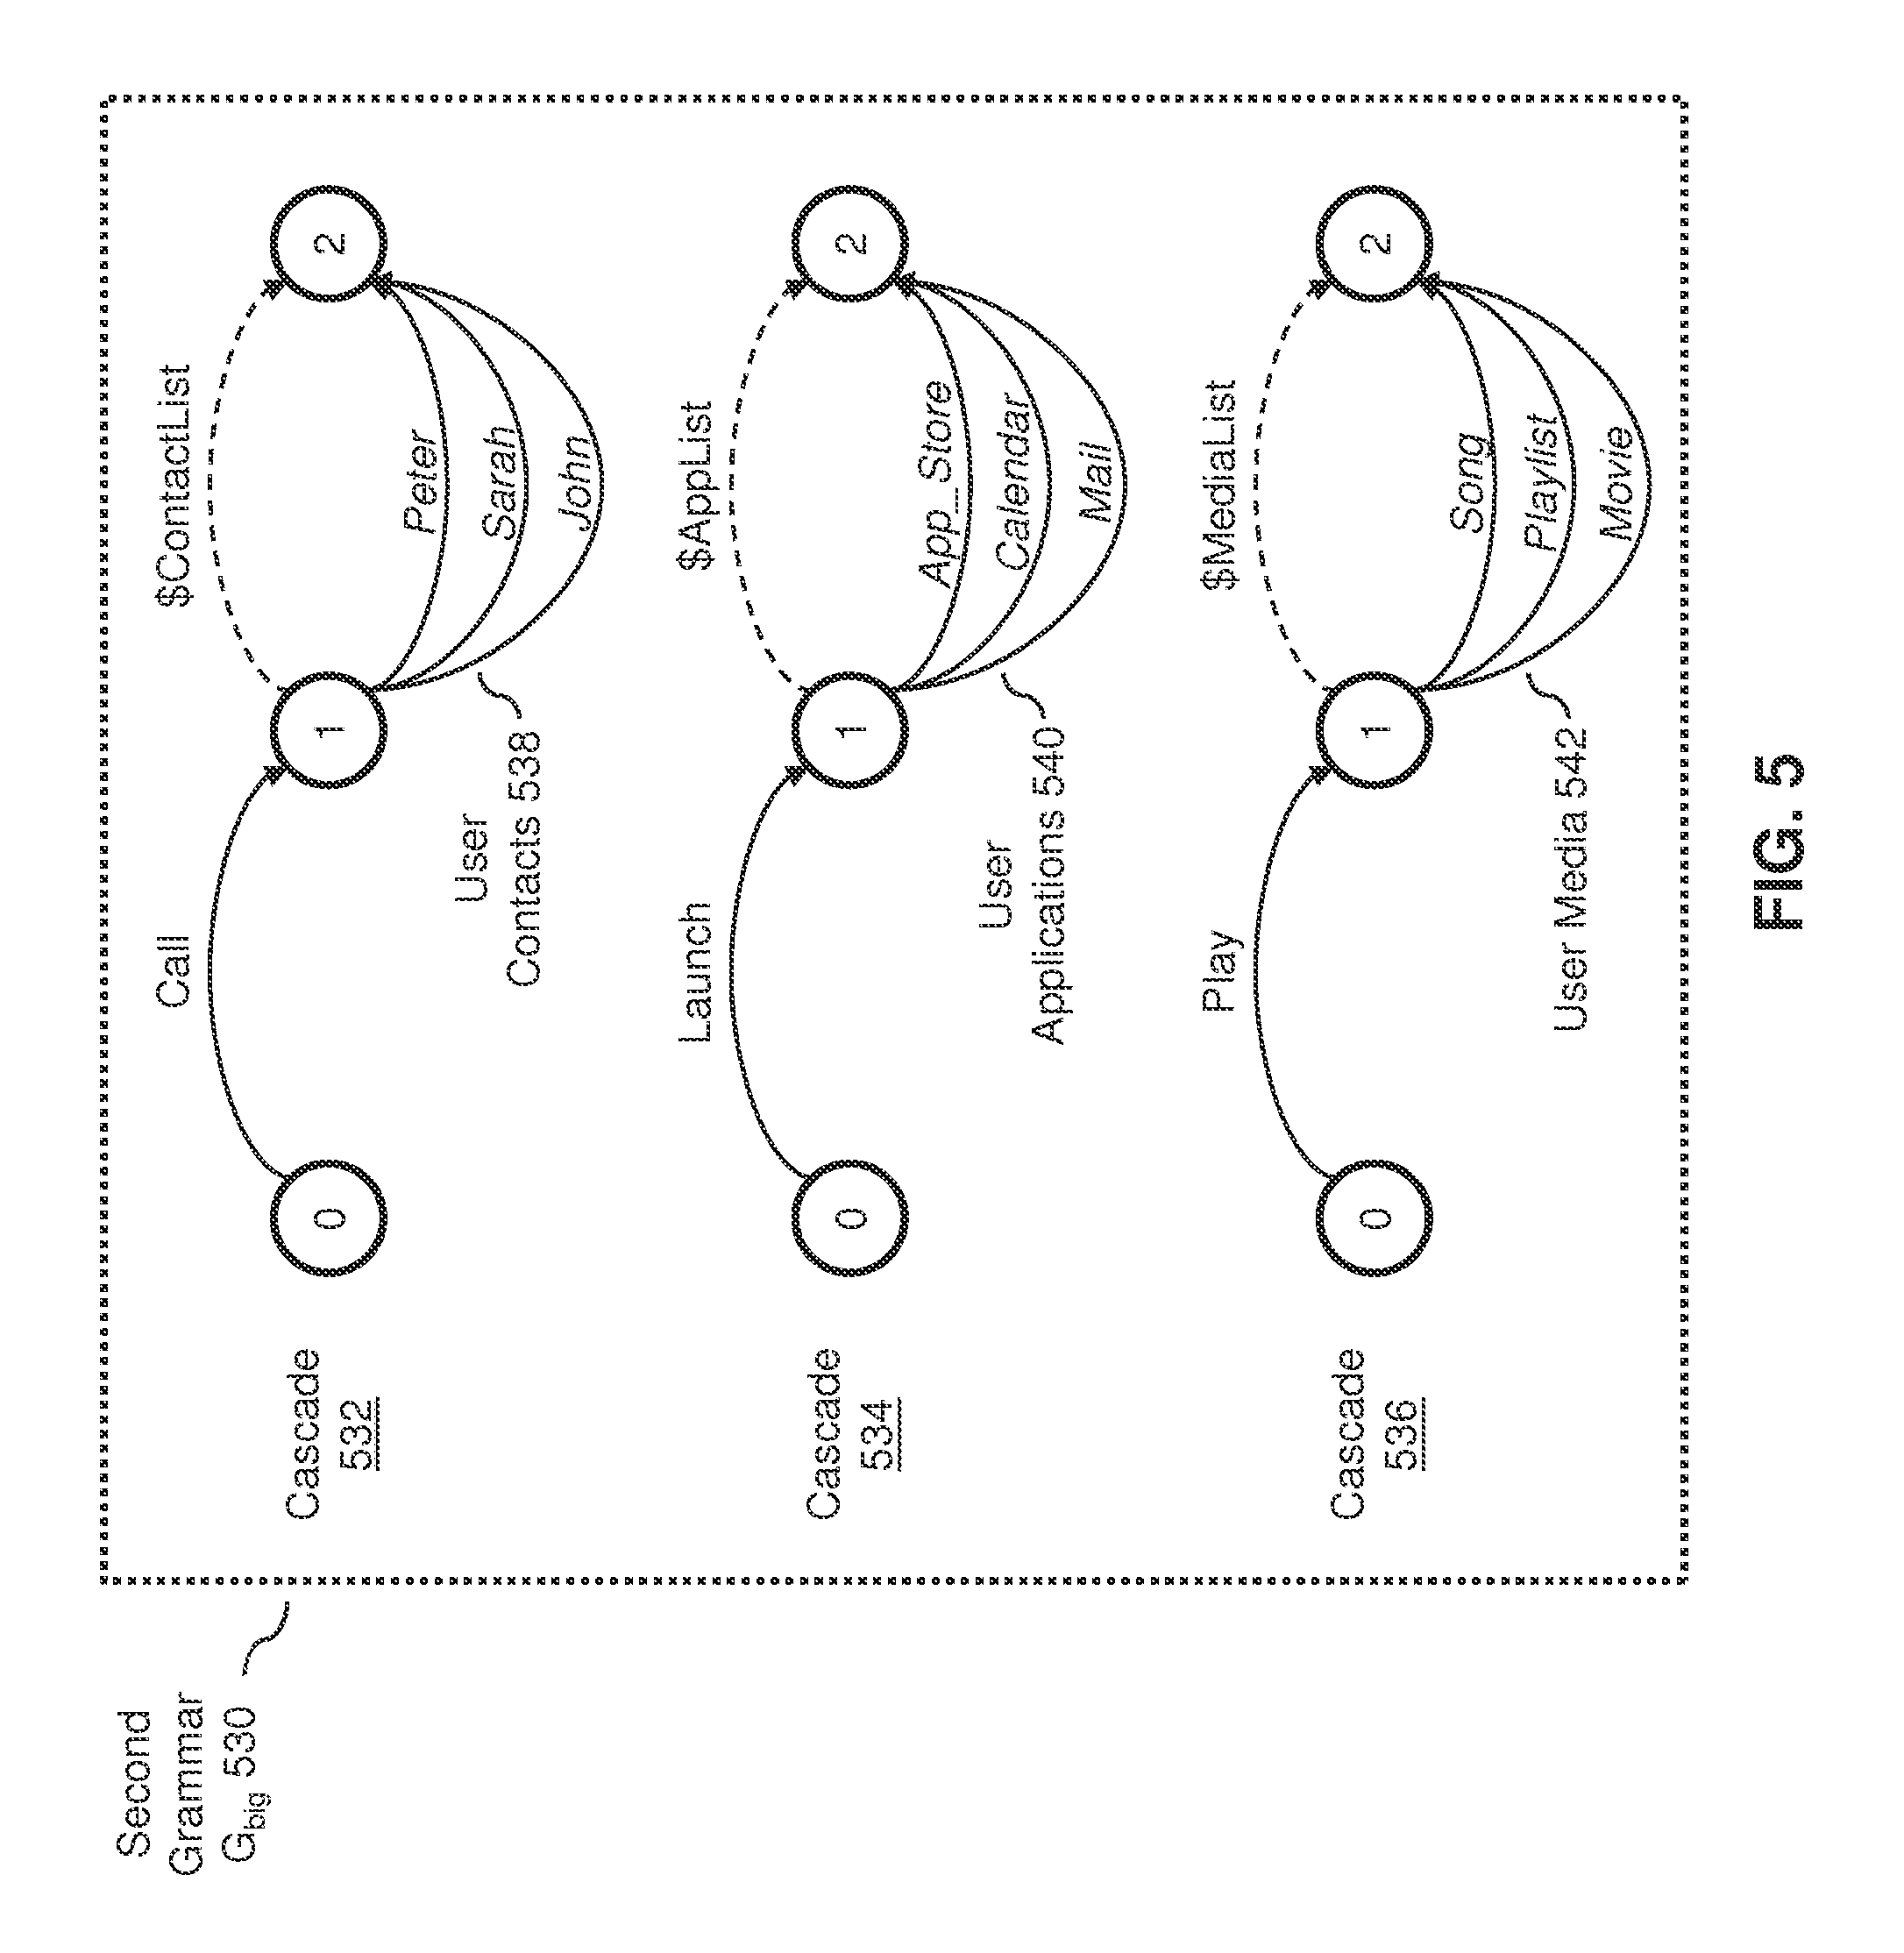 Us9502031b2 method for supporting dynamic grammars in wfst based asr patents